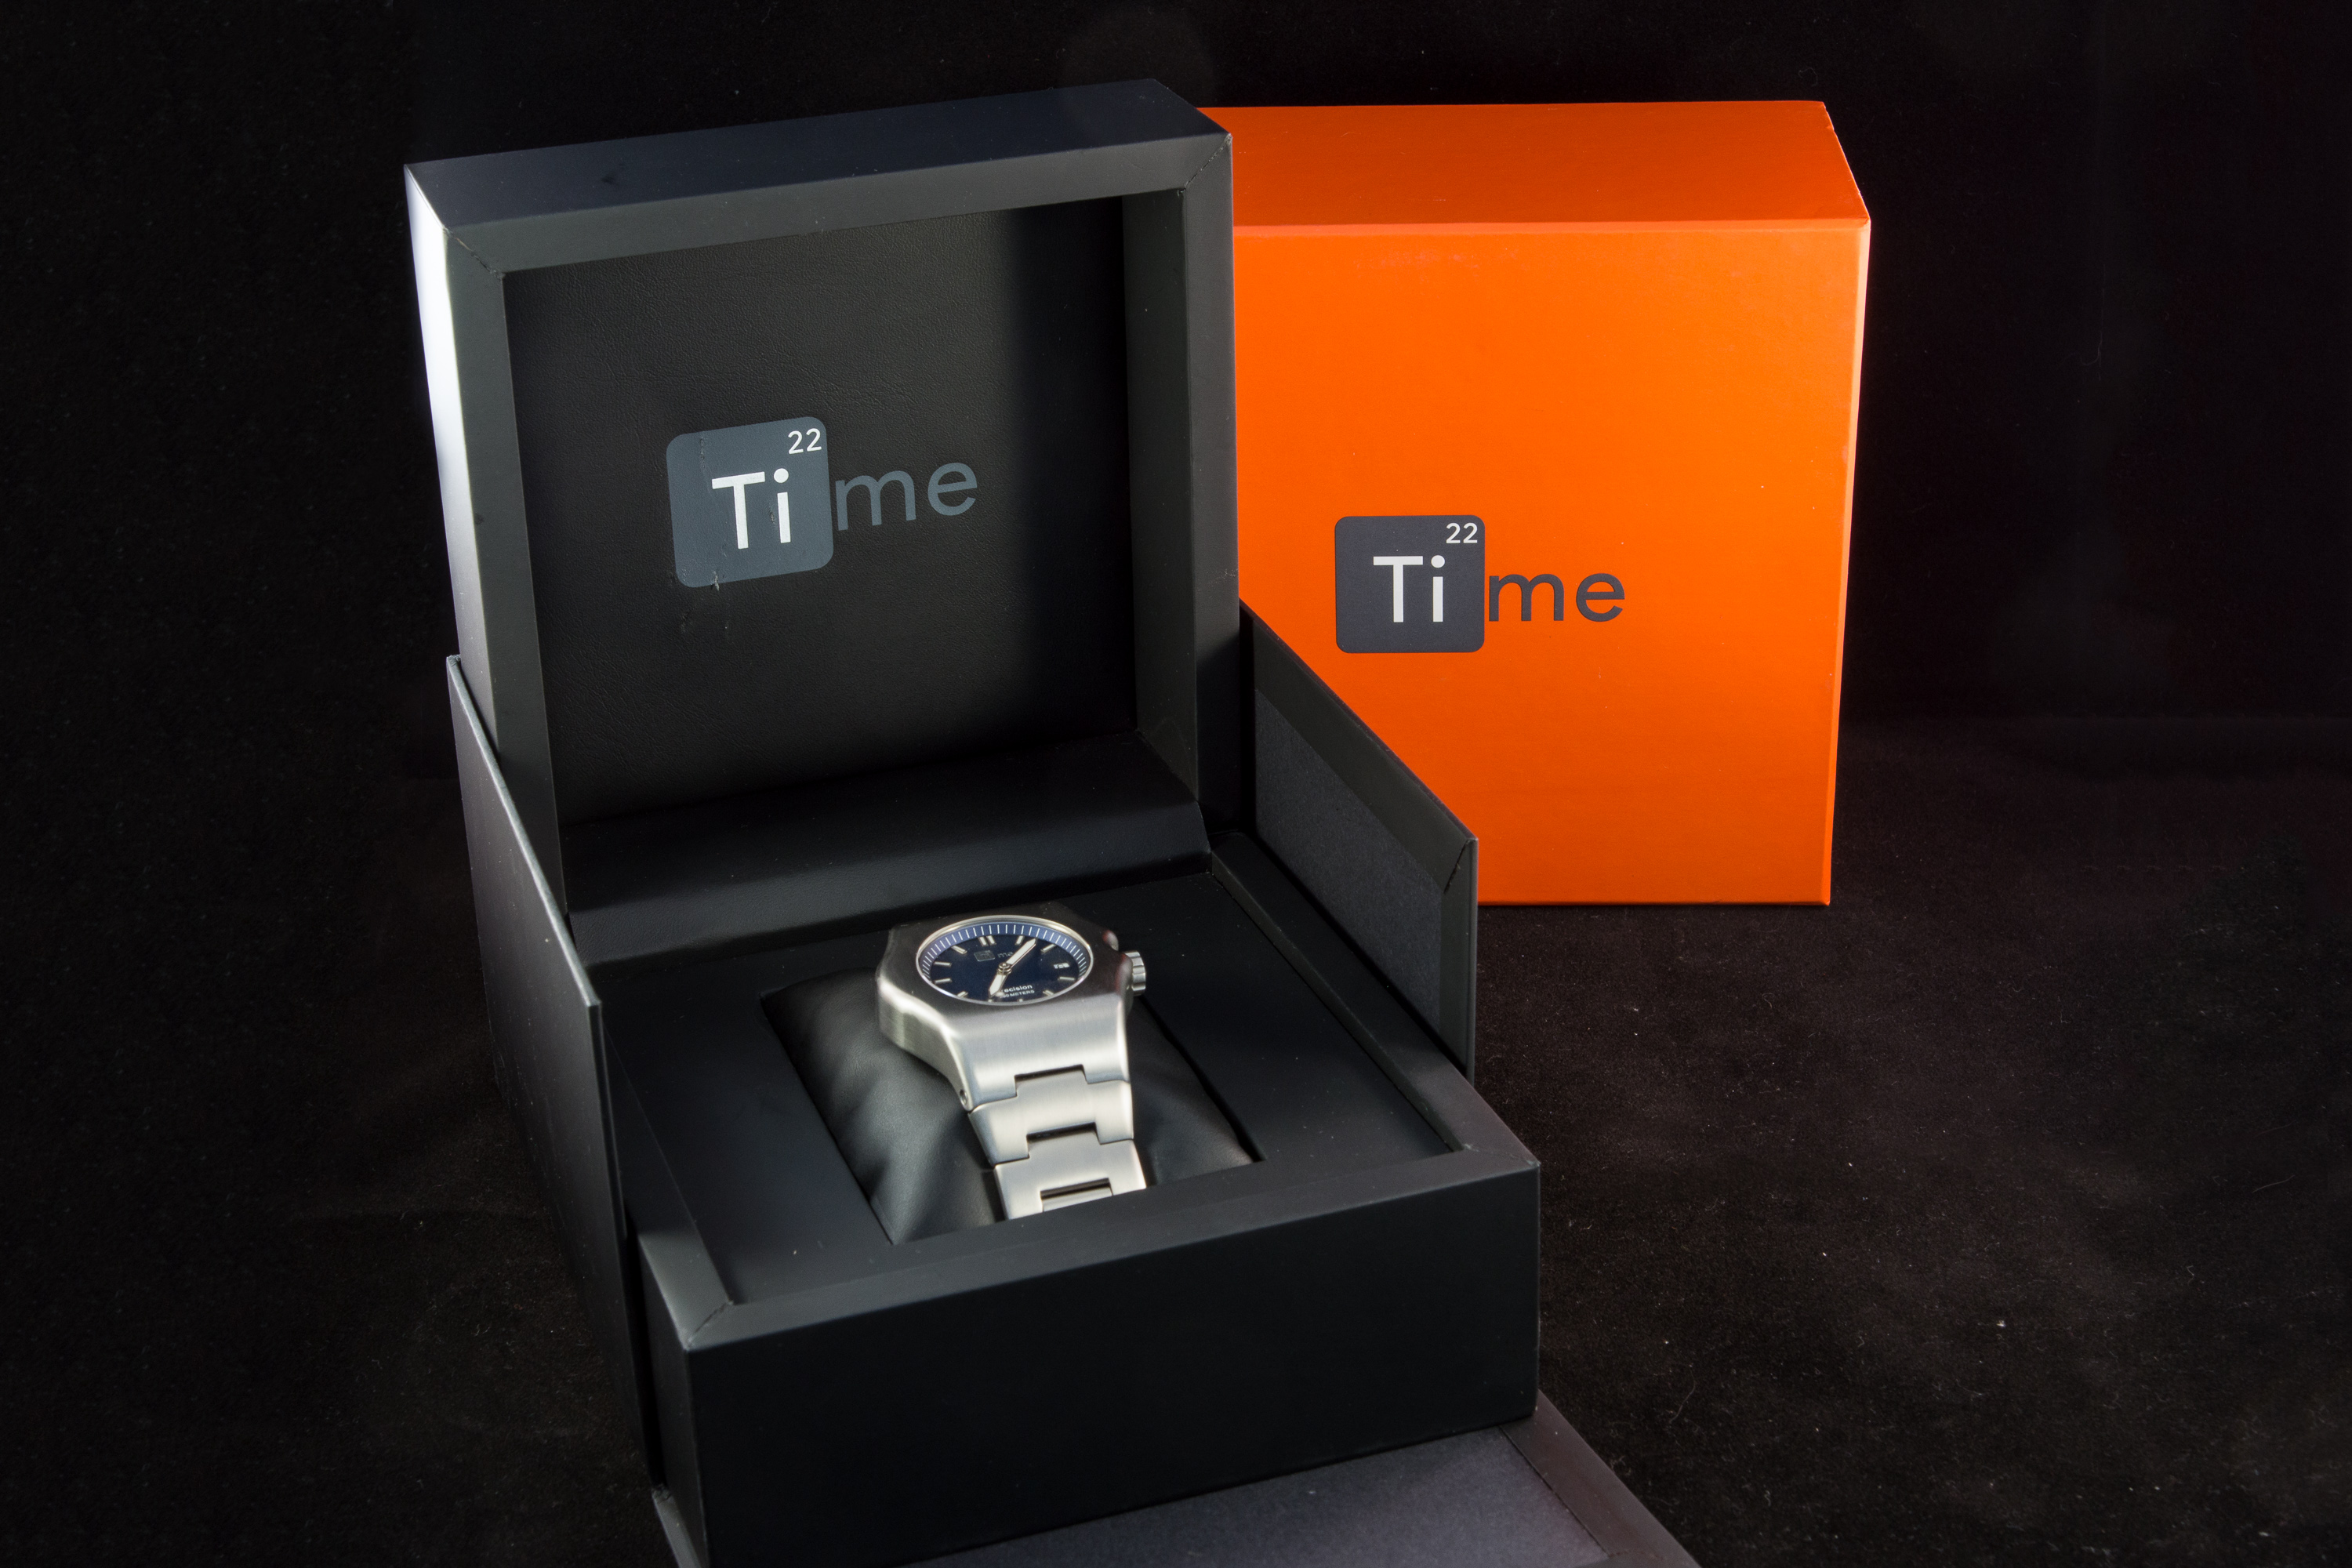 TiMe22 packaging